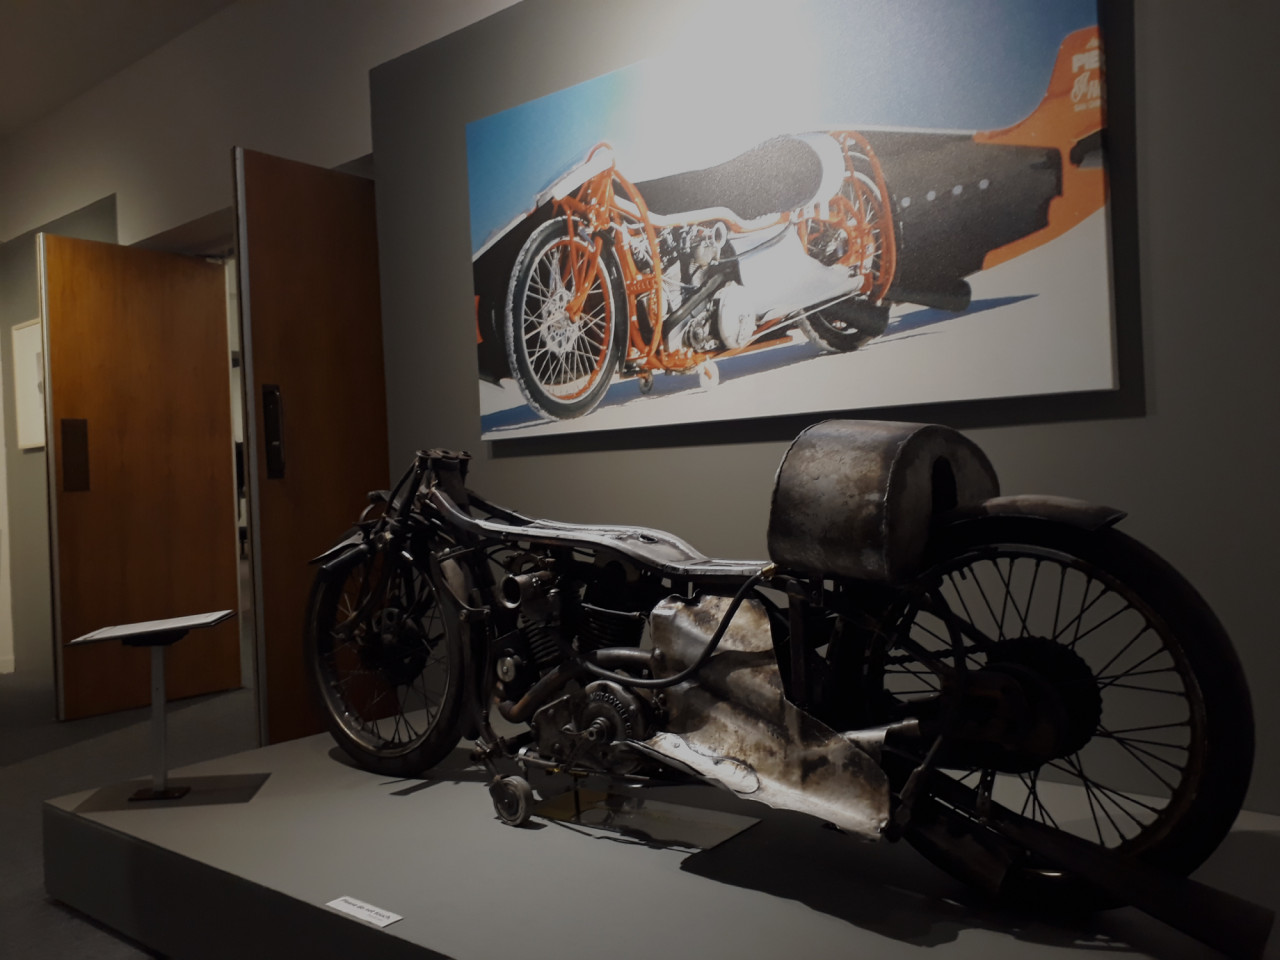 The replica of Burt Munroe's motorcycle.